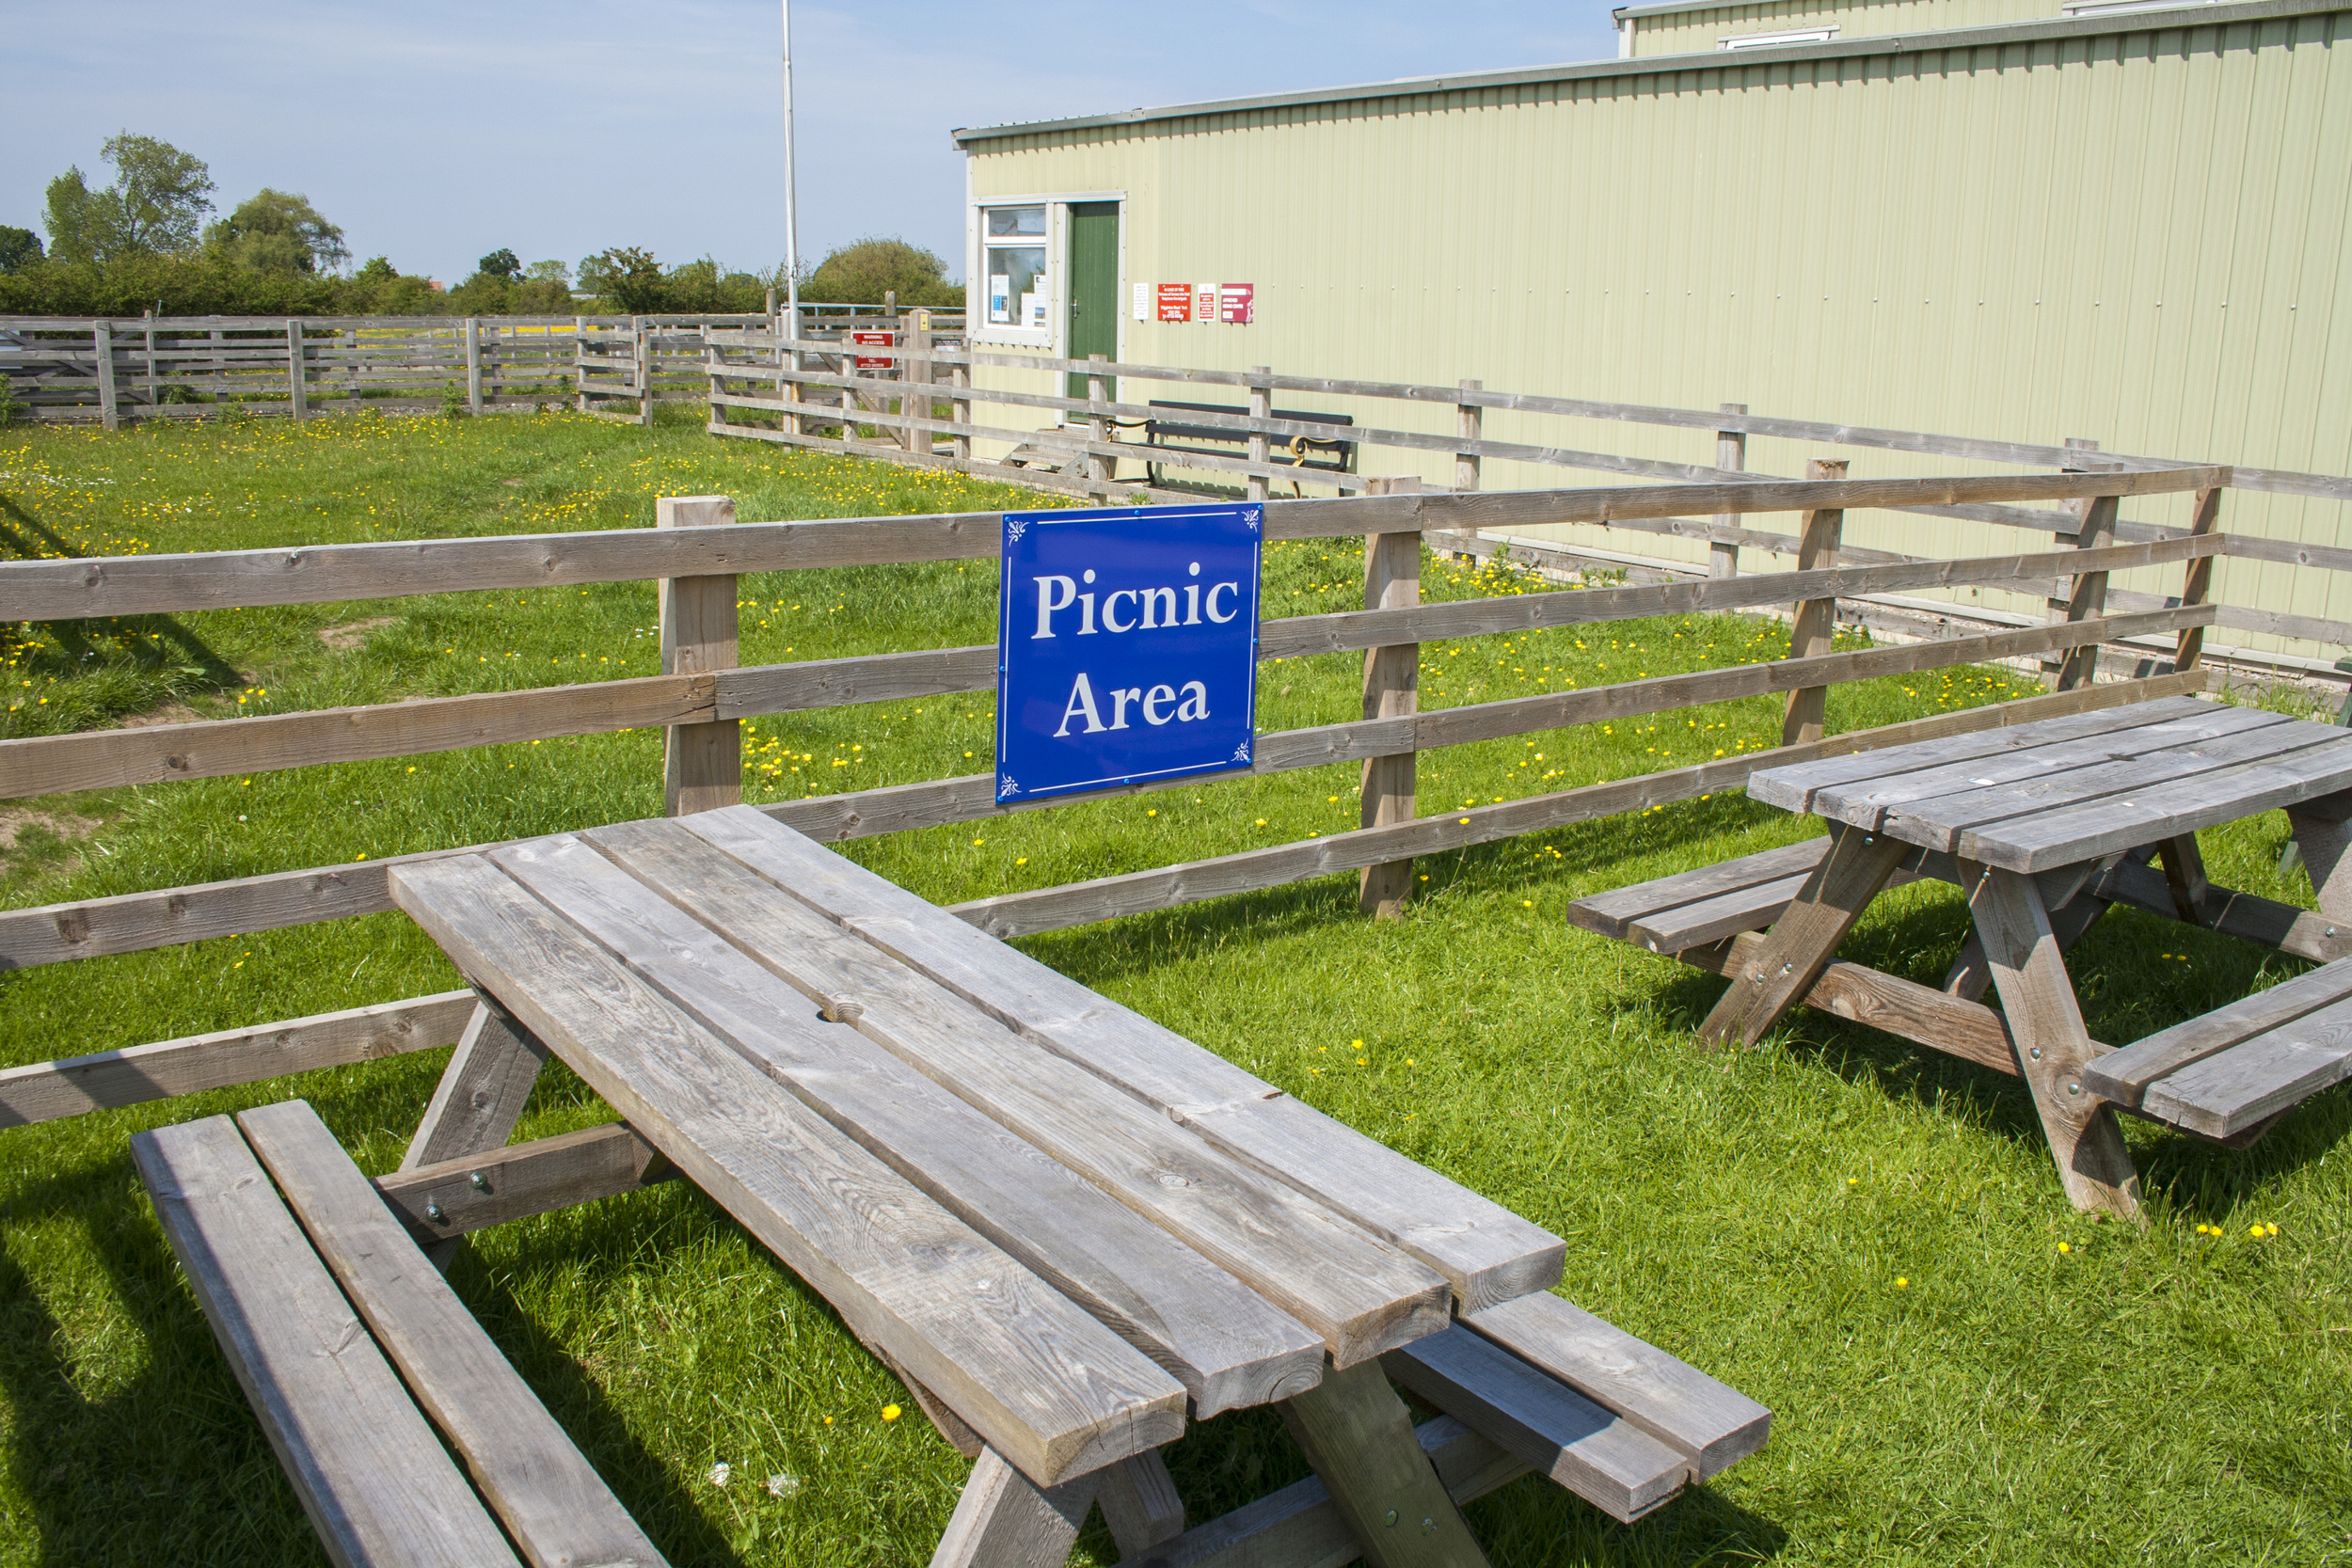 york-riding-school-picnic-area.jpg